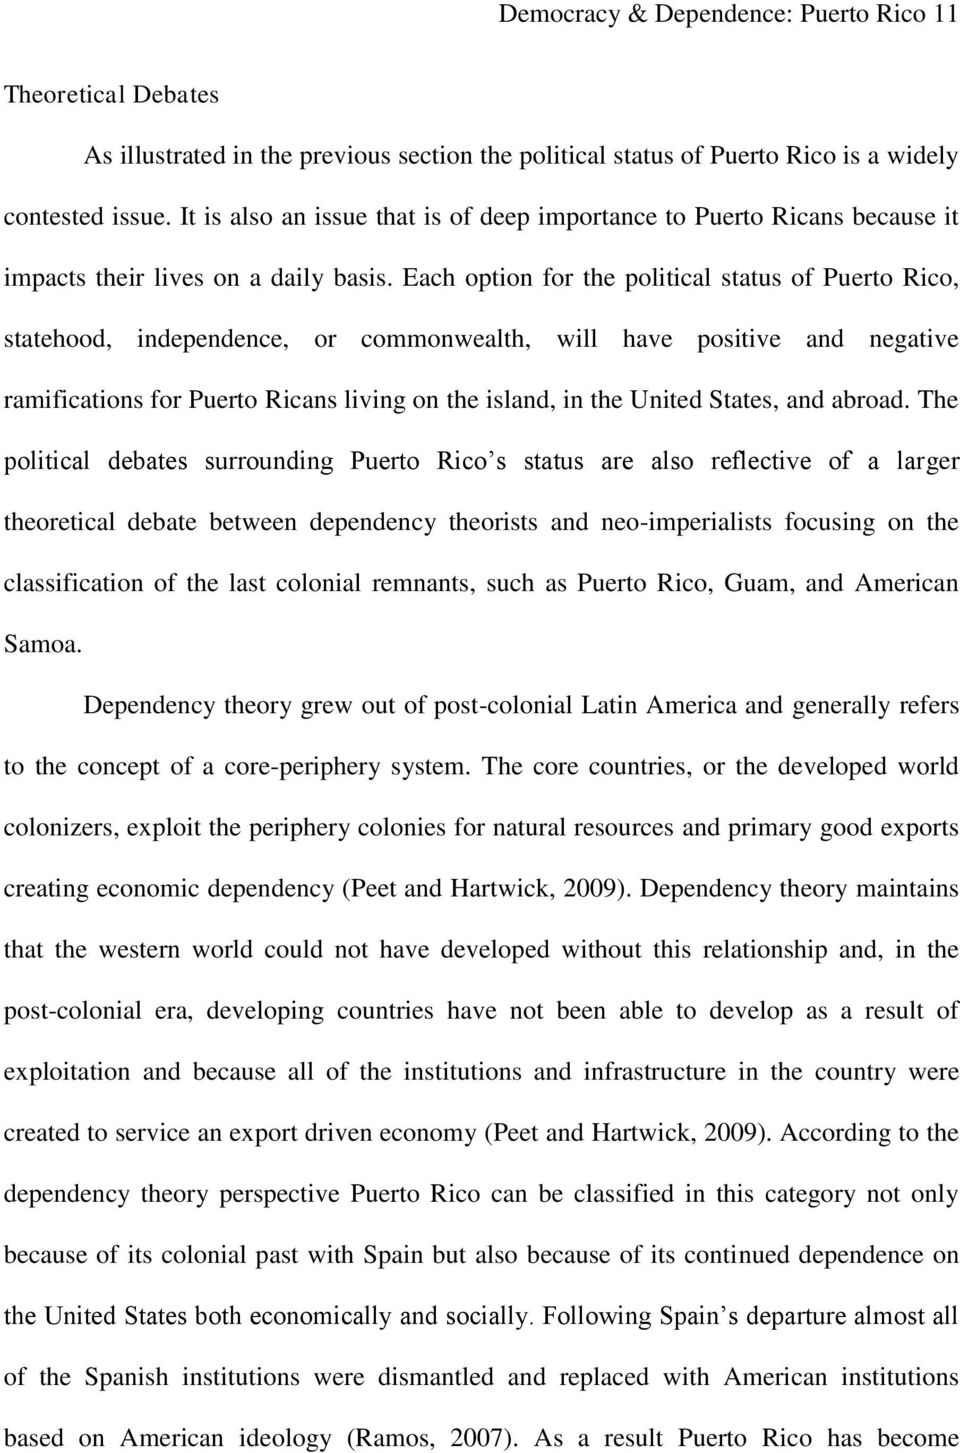 Each option for the political status of Puerto Rico, statehood, independence, or commonwealth, will have positive and negative ramifications for Puerto Ricans living on the island, in the United